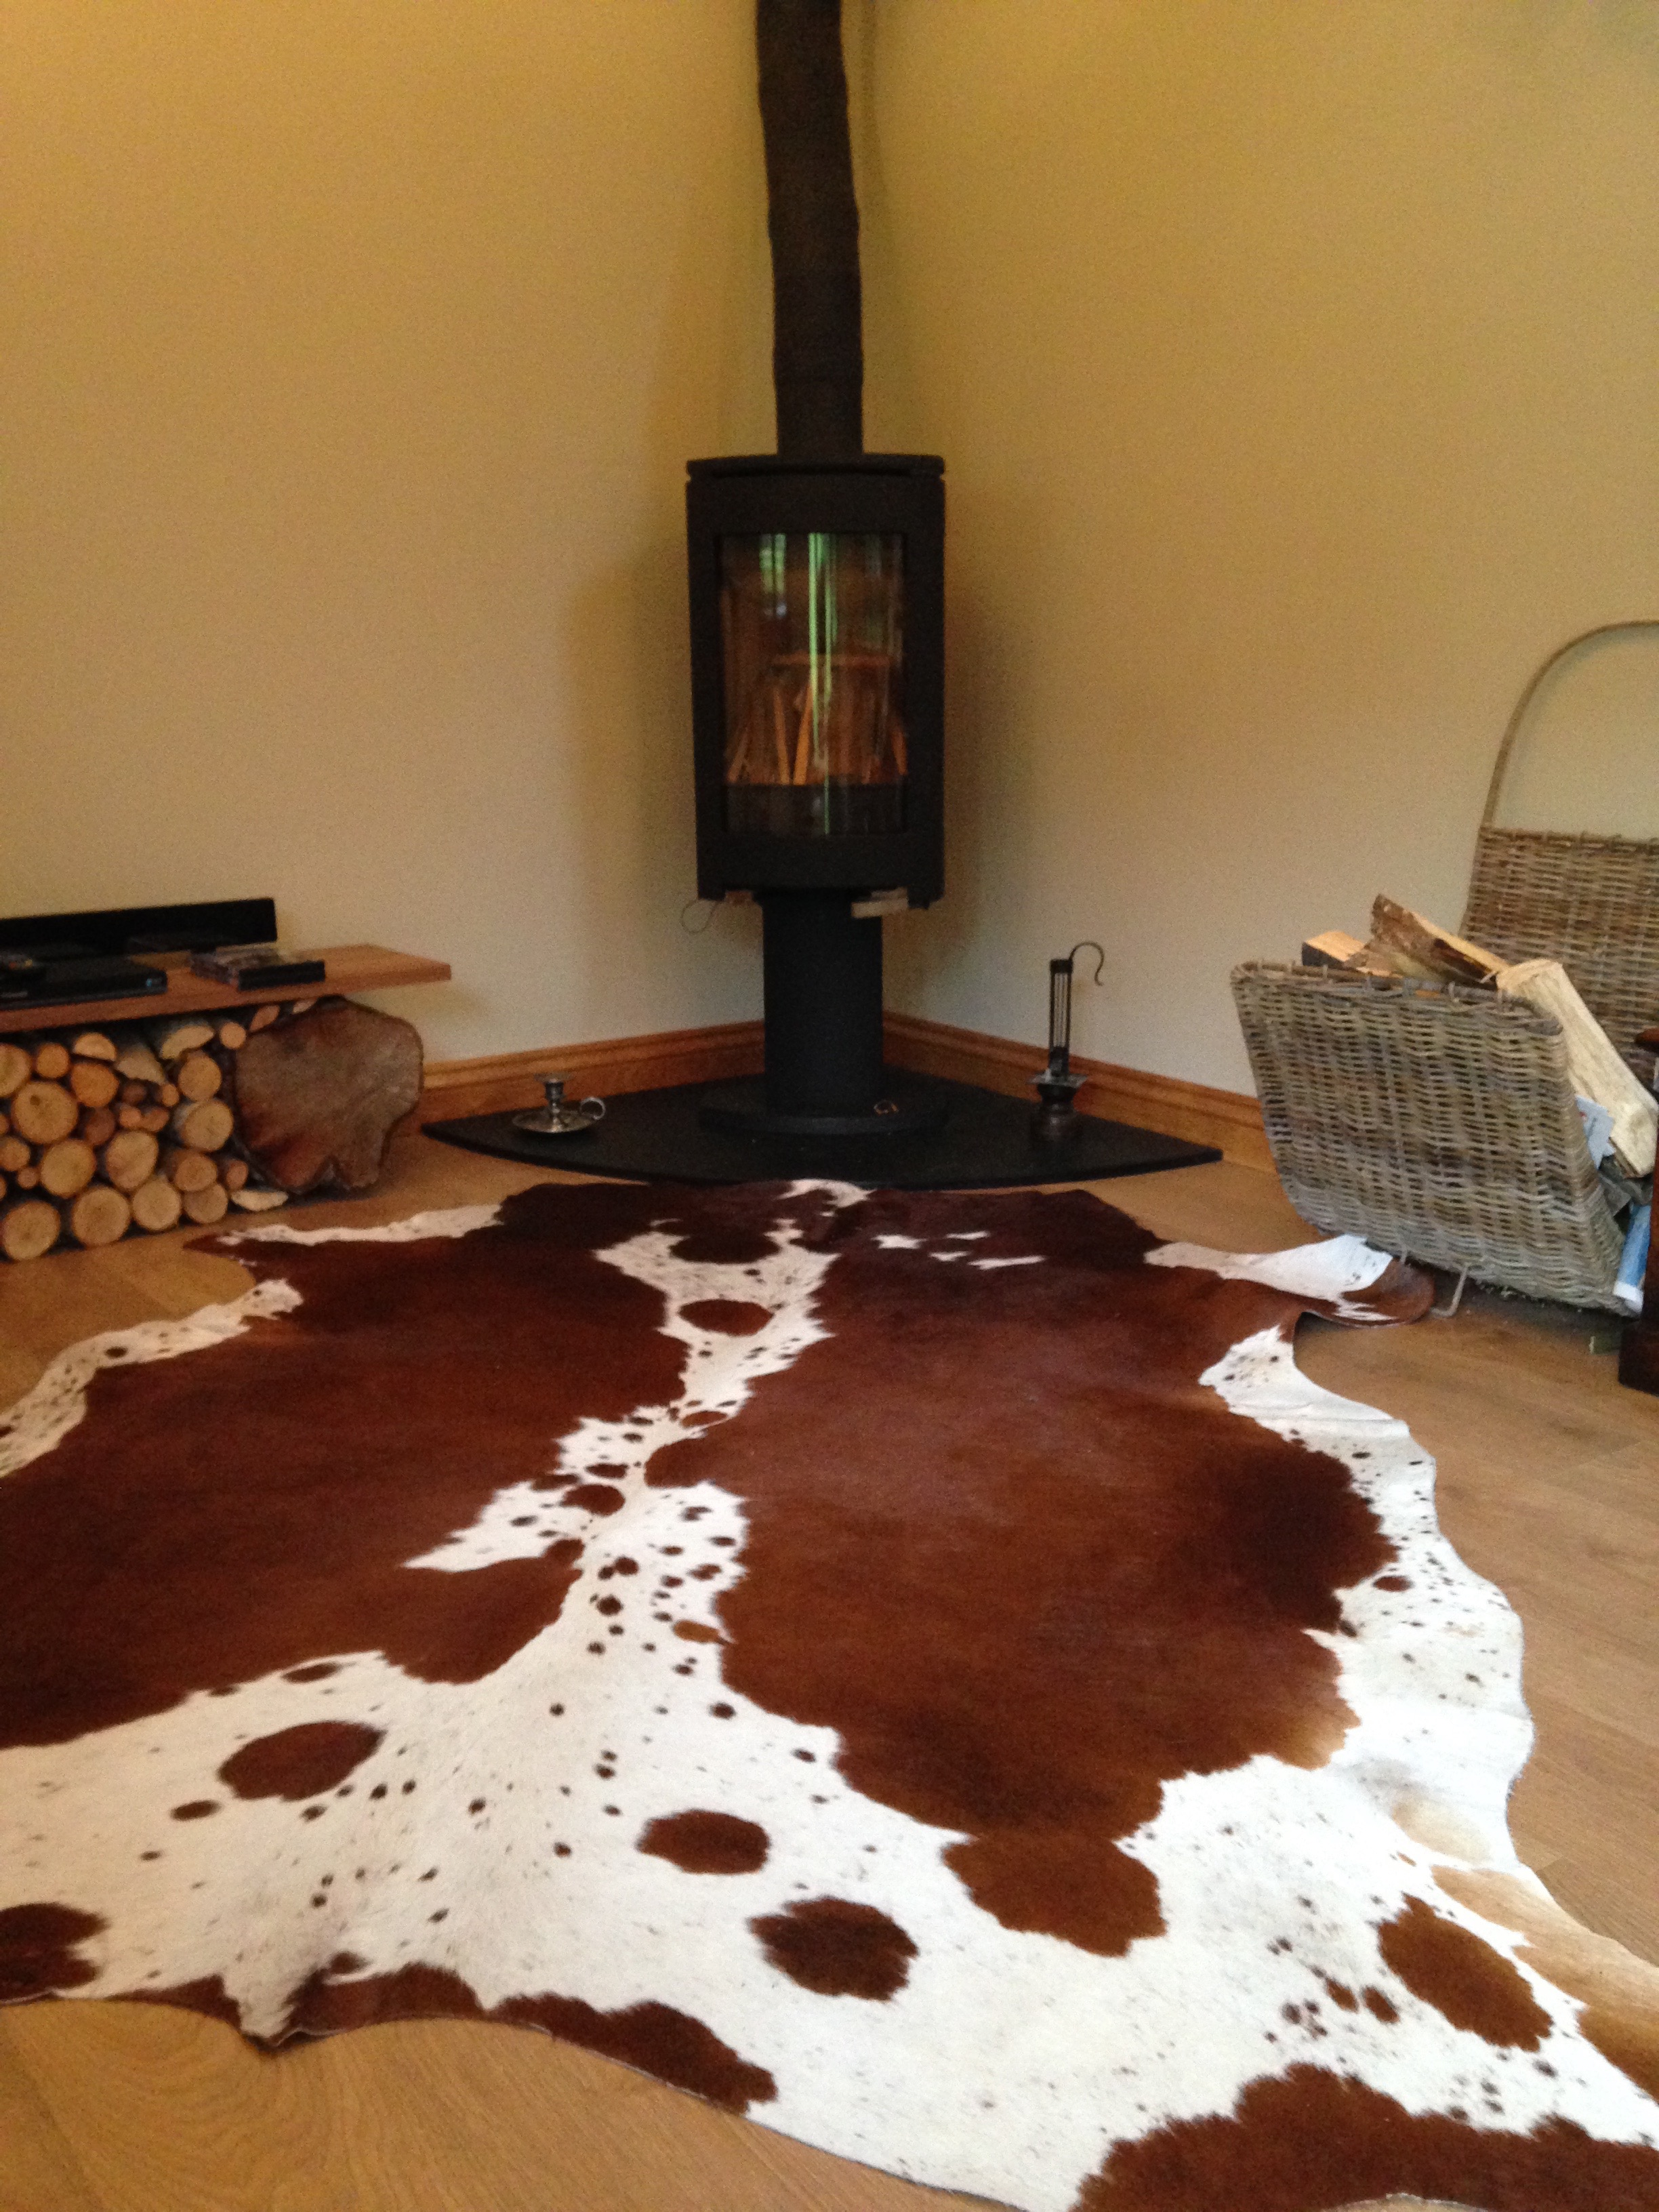 I absolutely love my Zulucow rug!